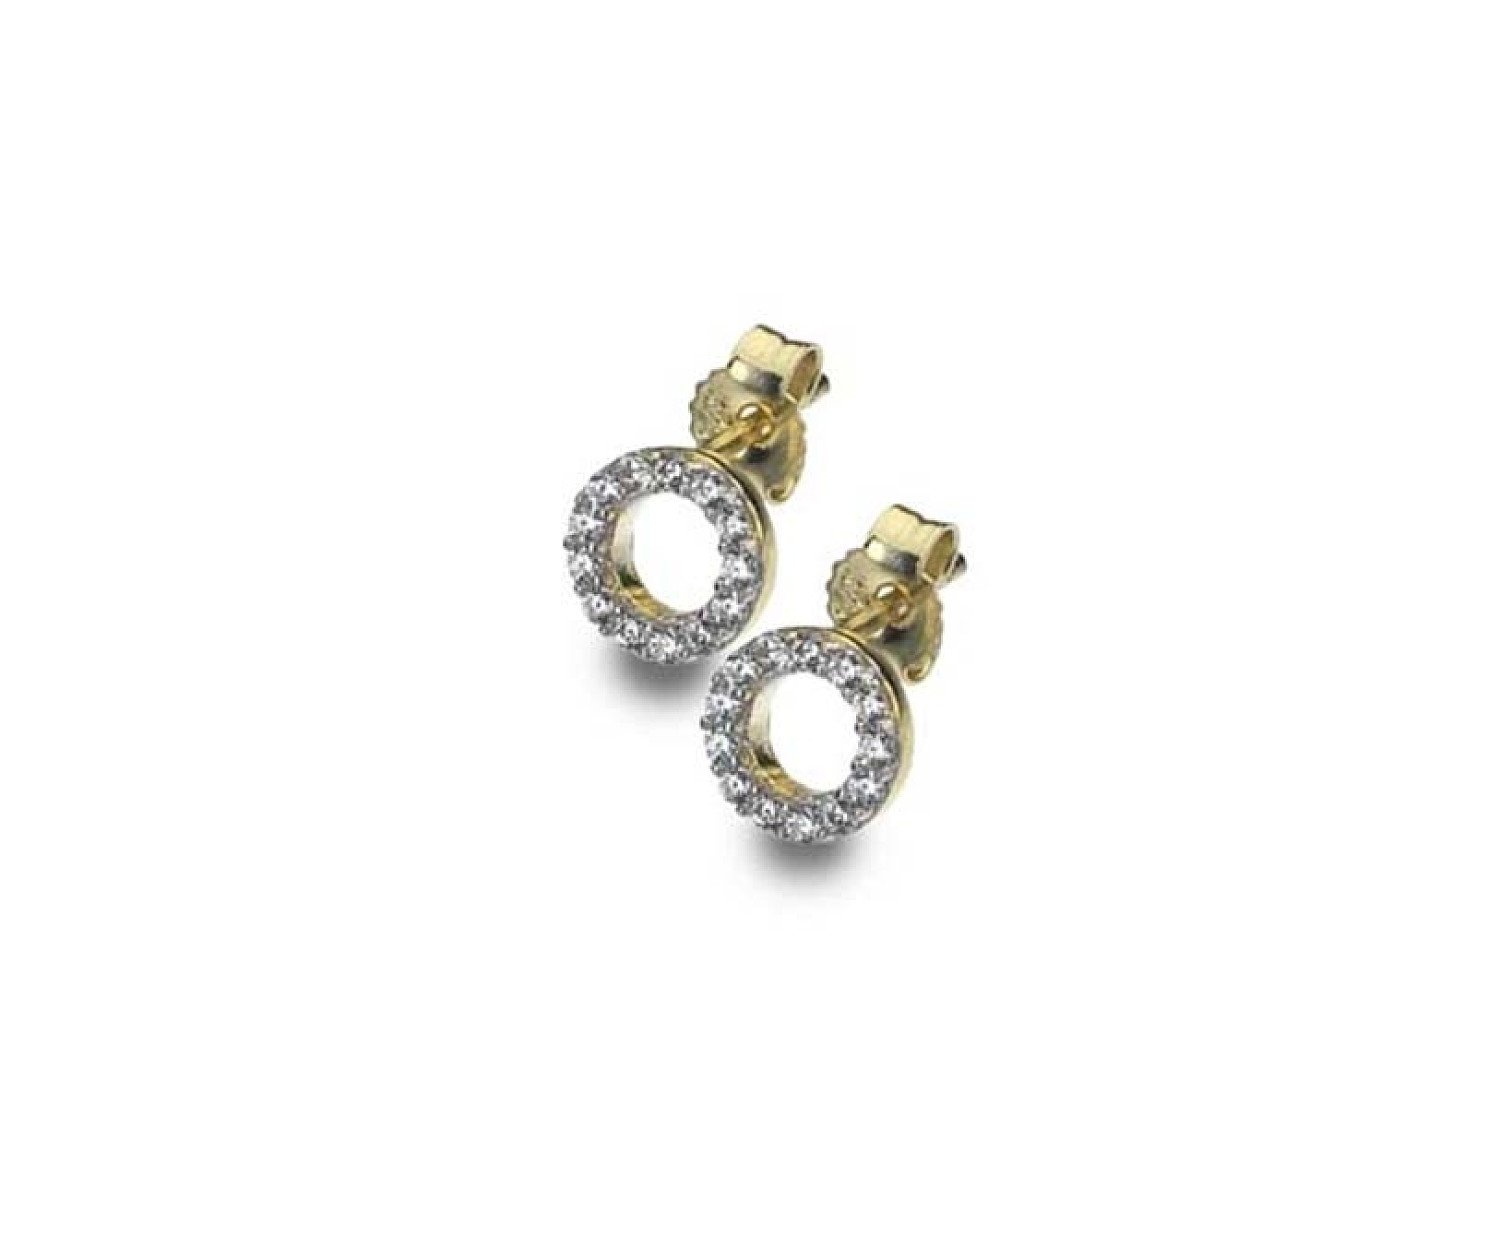 SPARKLES SPARKLES SPARKLES - Gold and silver jewellery with cubic zircona - Free delivery & gift box